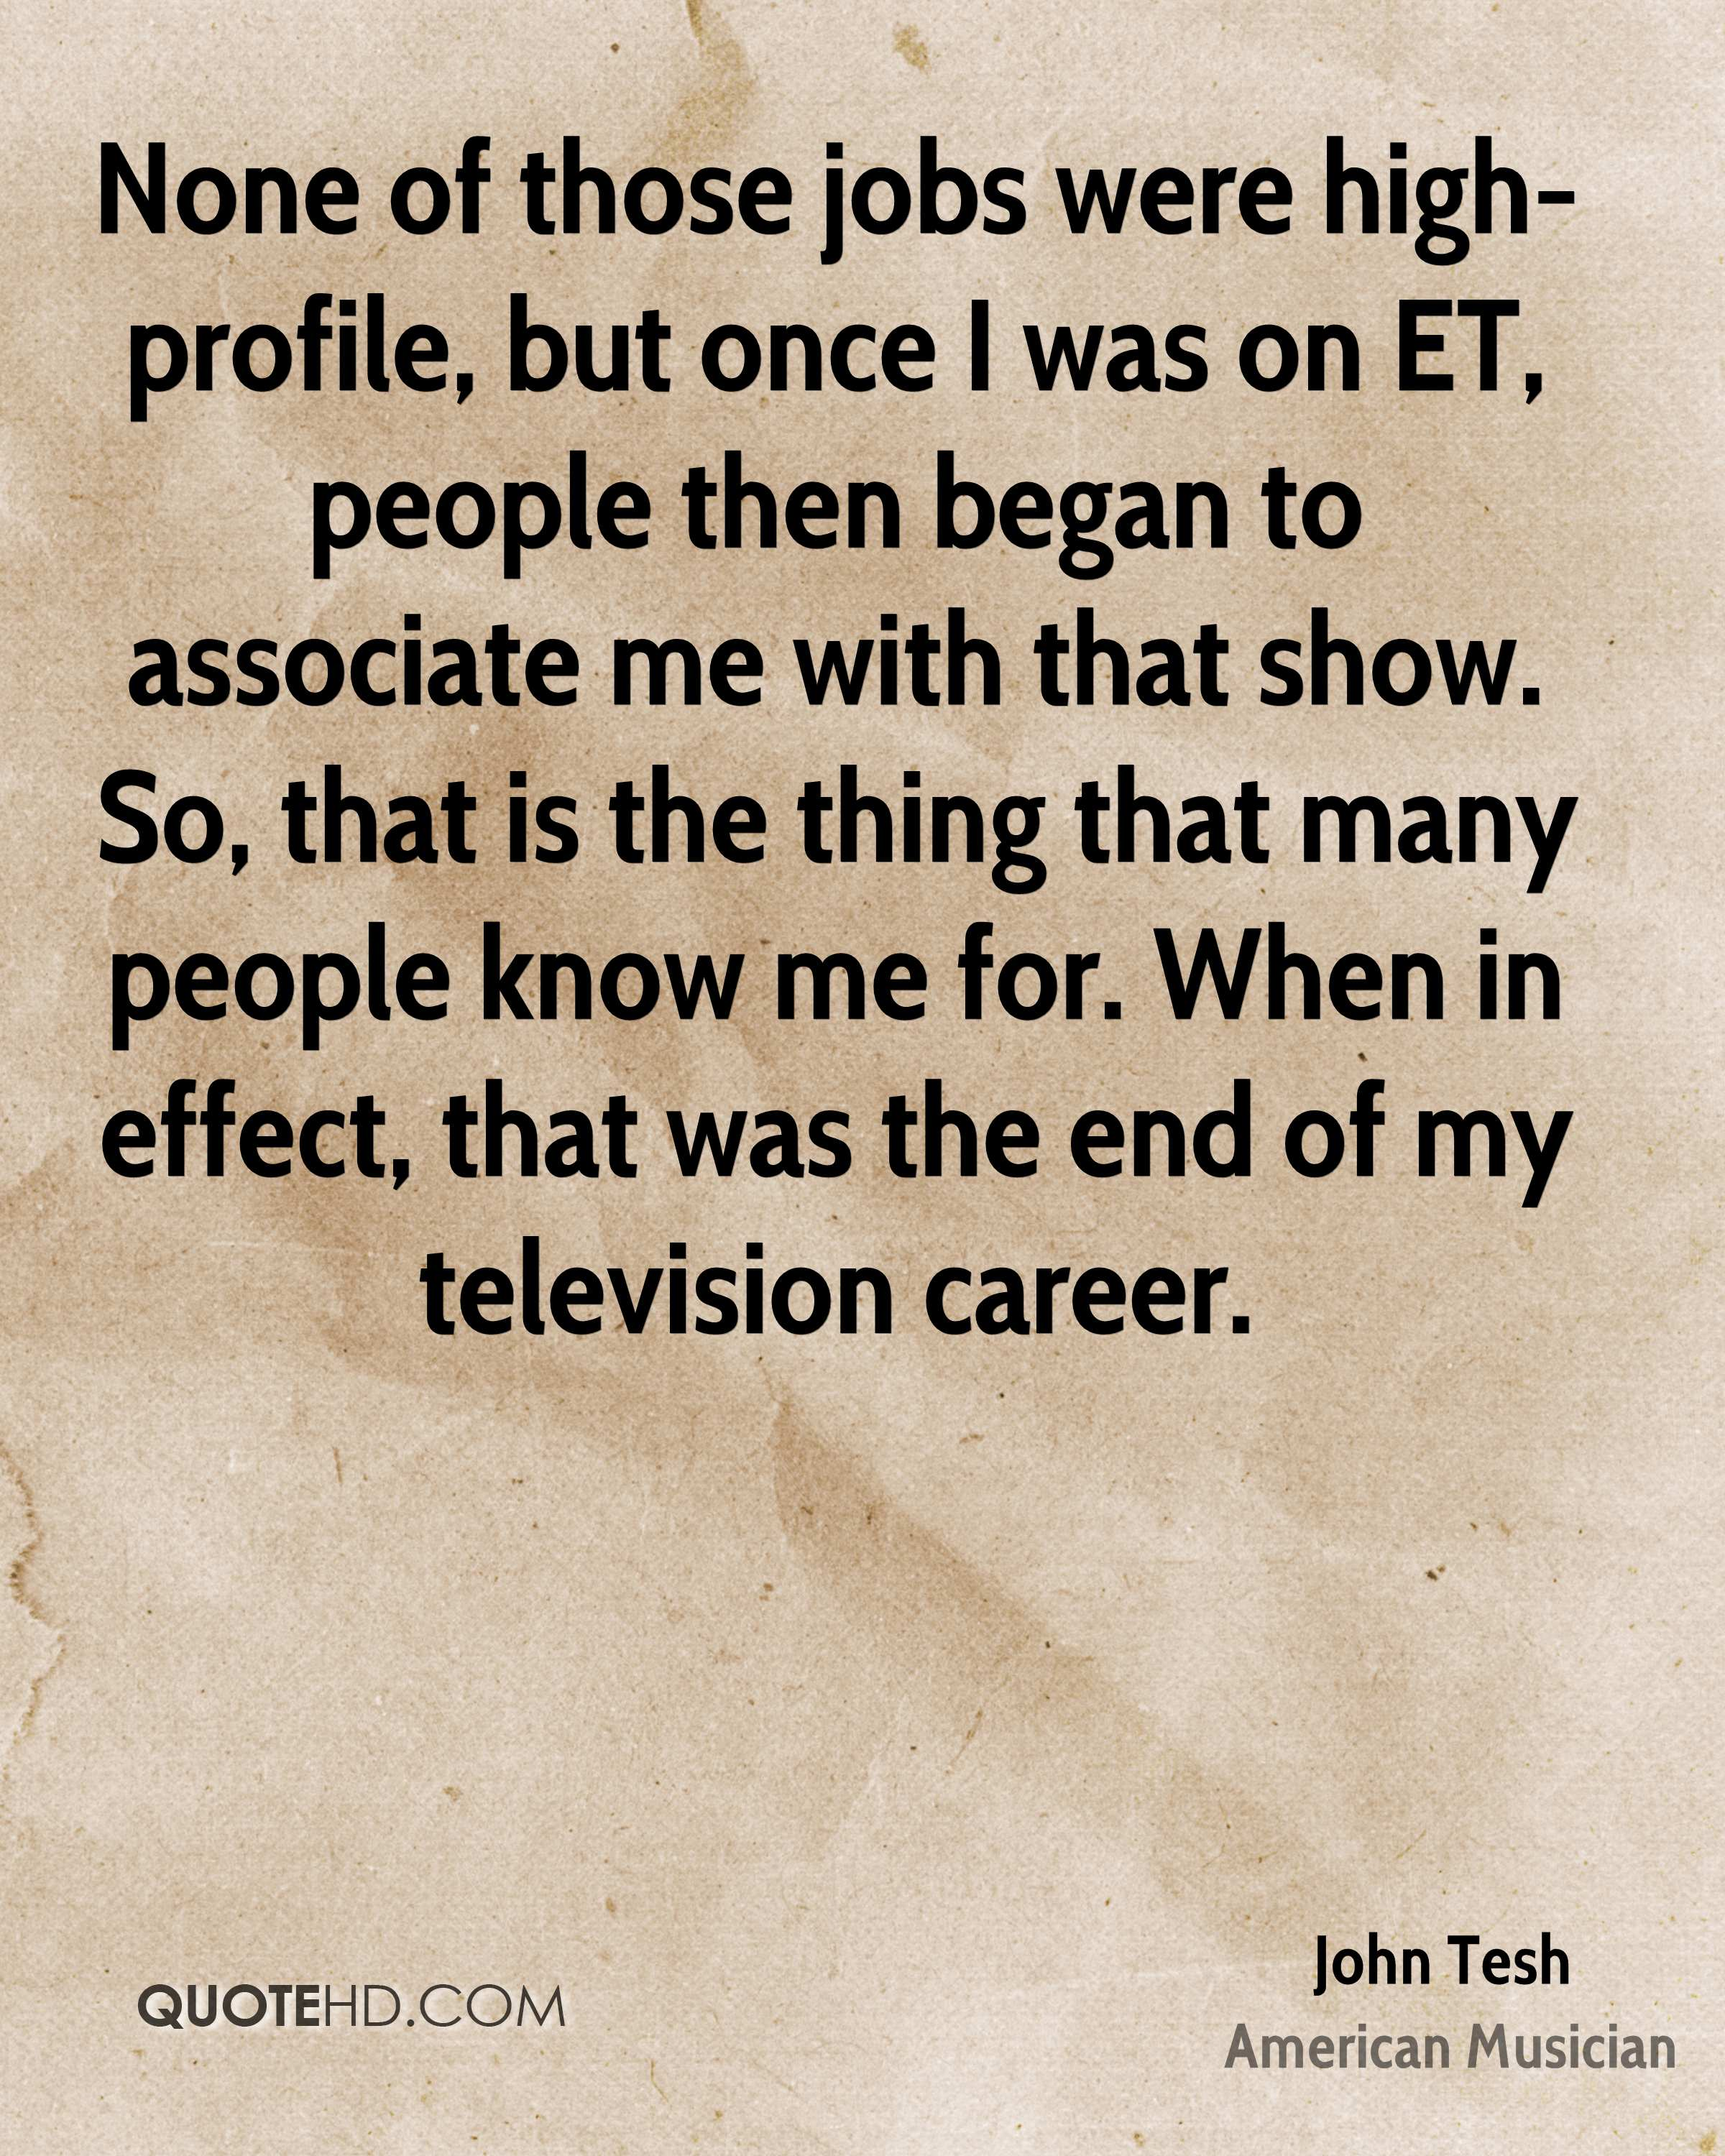 None of those jobs were high-profile, but once I was on ET, people then began to associate me with that show. So, that is the thing that many people know me for. When in effect, that was the end of my television career.